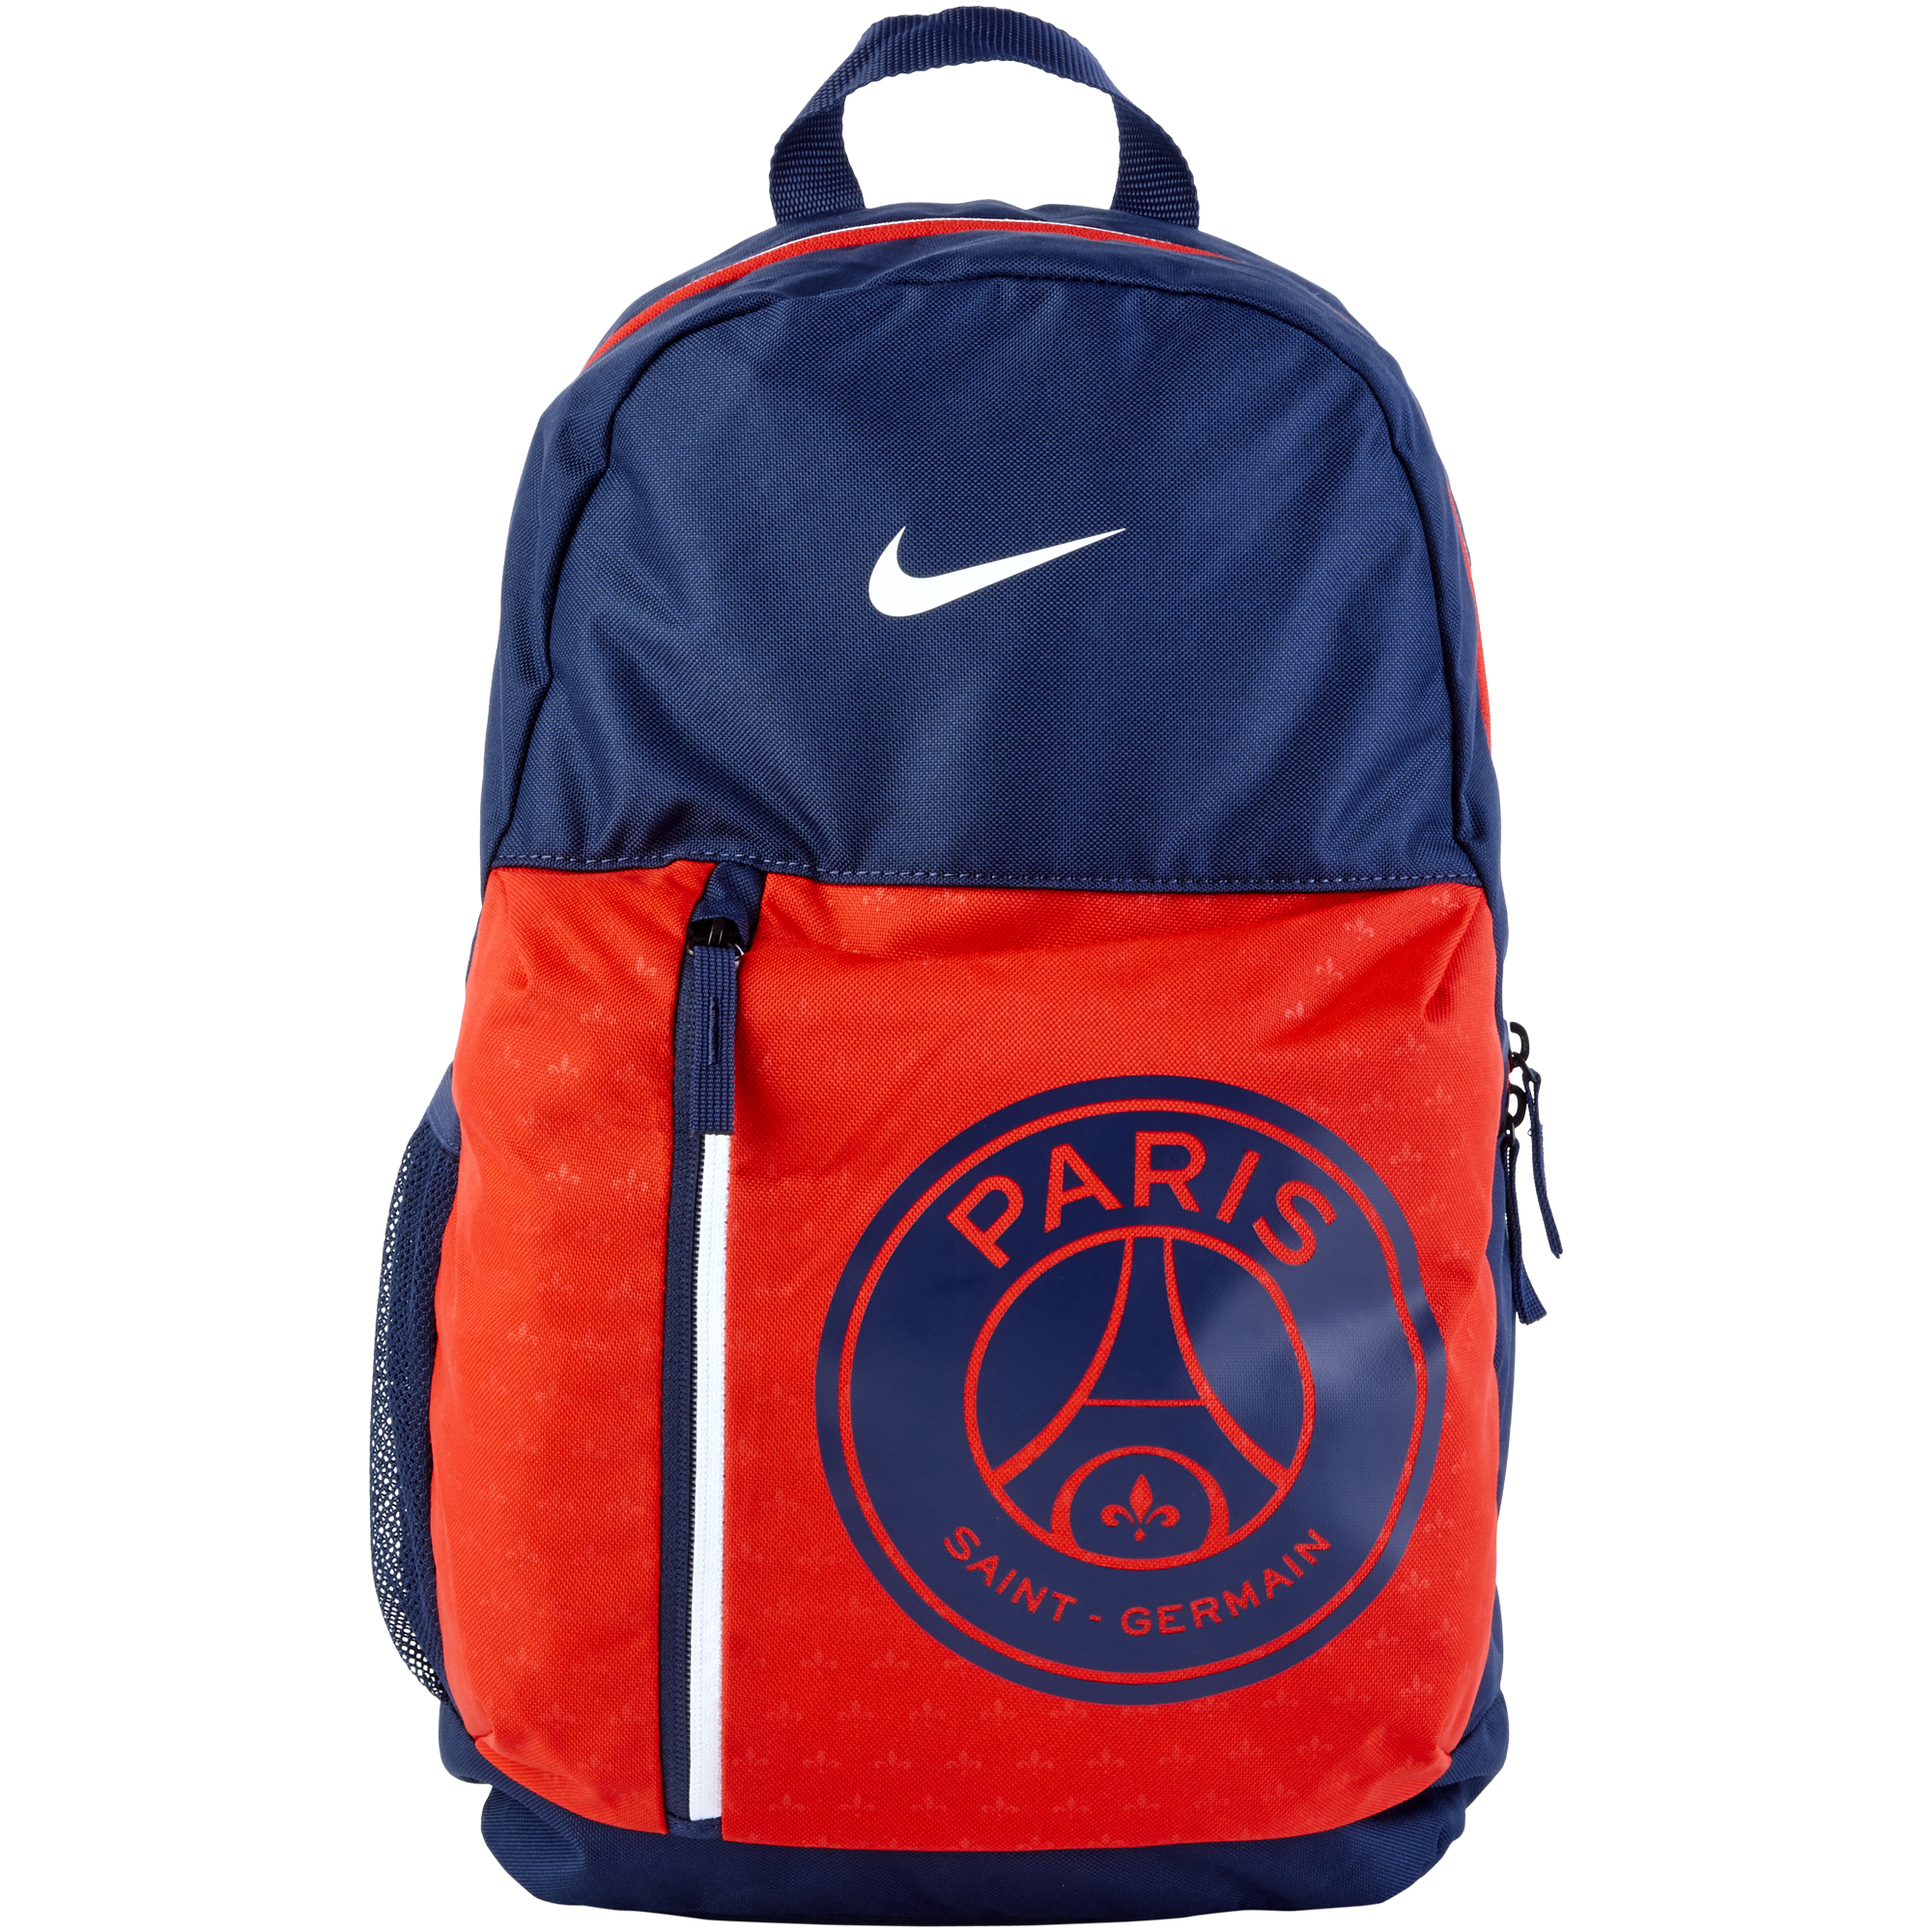 f3272b7d1cc8 Nike Paris Saint-Germain Stadium Kids  Football Backpack - Blue ...